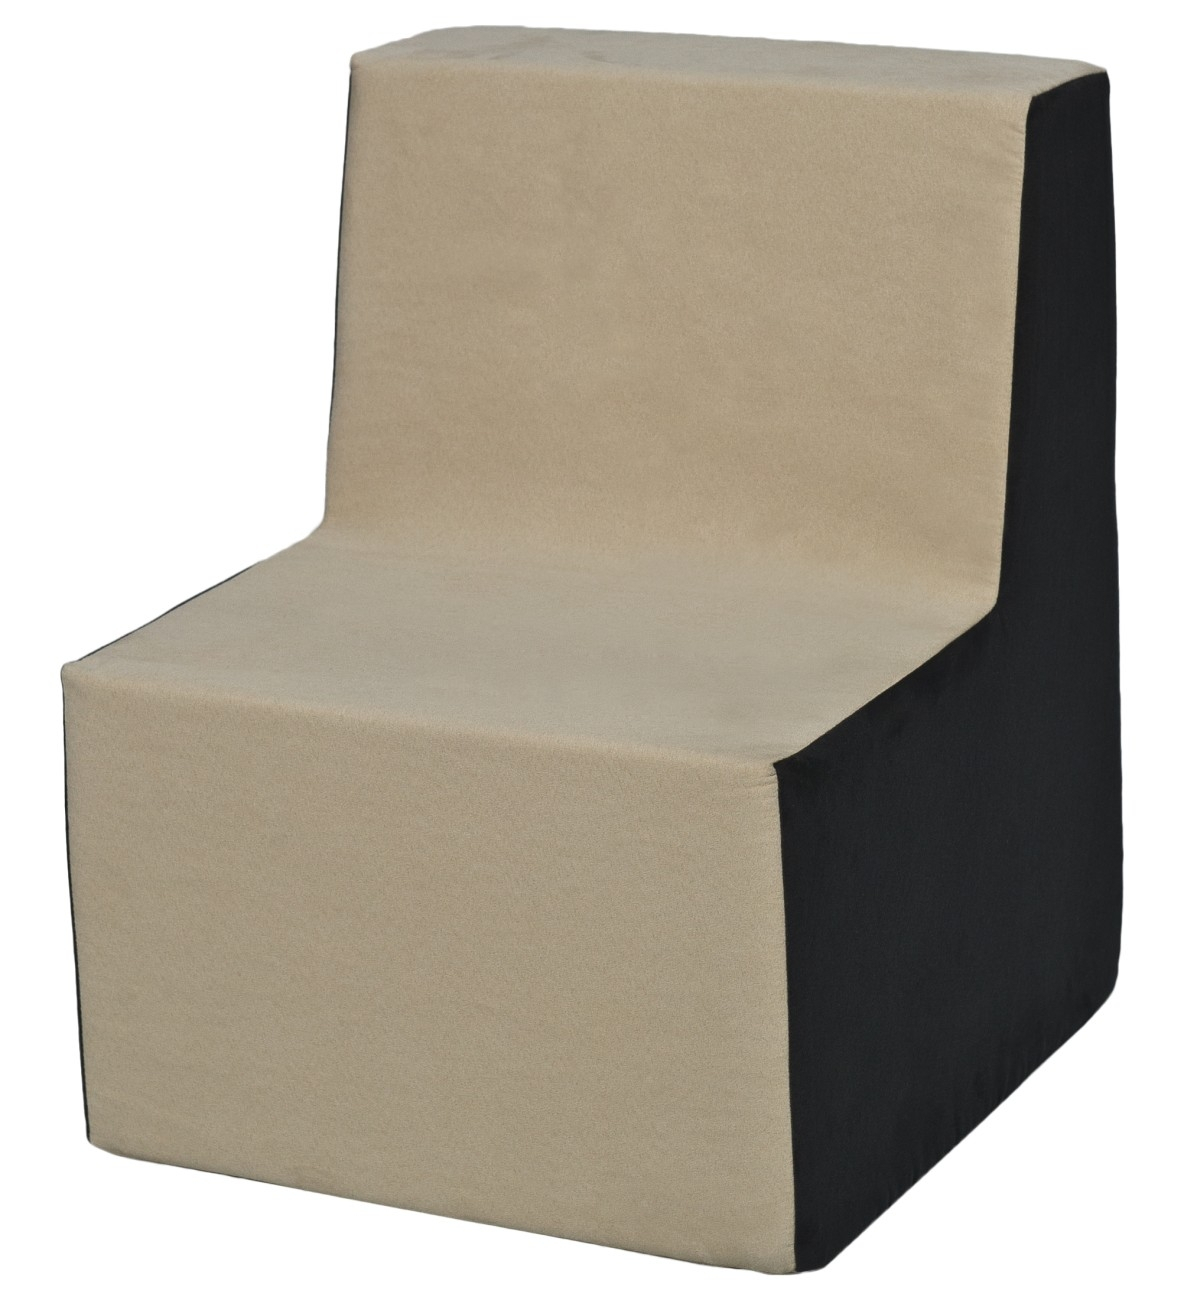 chaise fauteuil pouf pour chambre d enfant jeu confort repos ebay. Black Bedroom Furniture Sets. Home Design Ideas